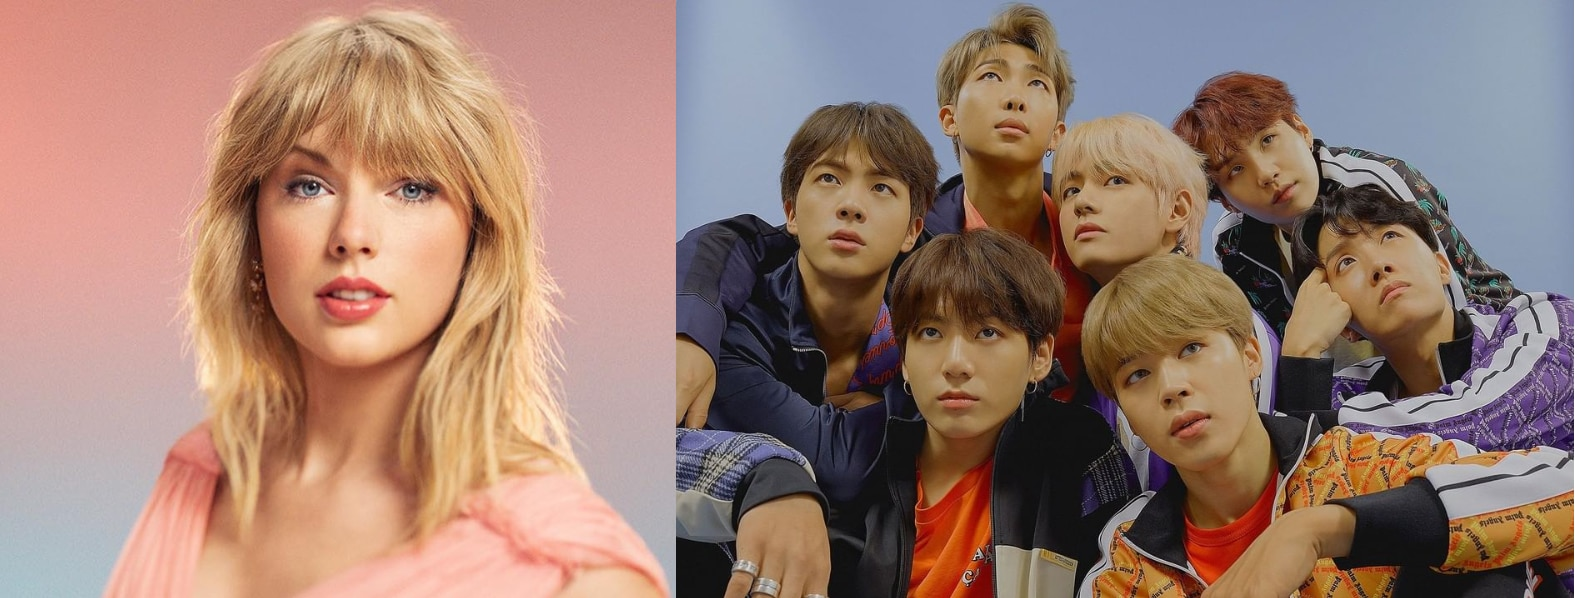 BTS, TAYLOR SWIFT Among Time's Most 100 Influential People Of 2019